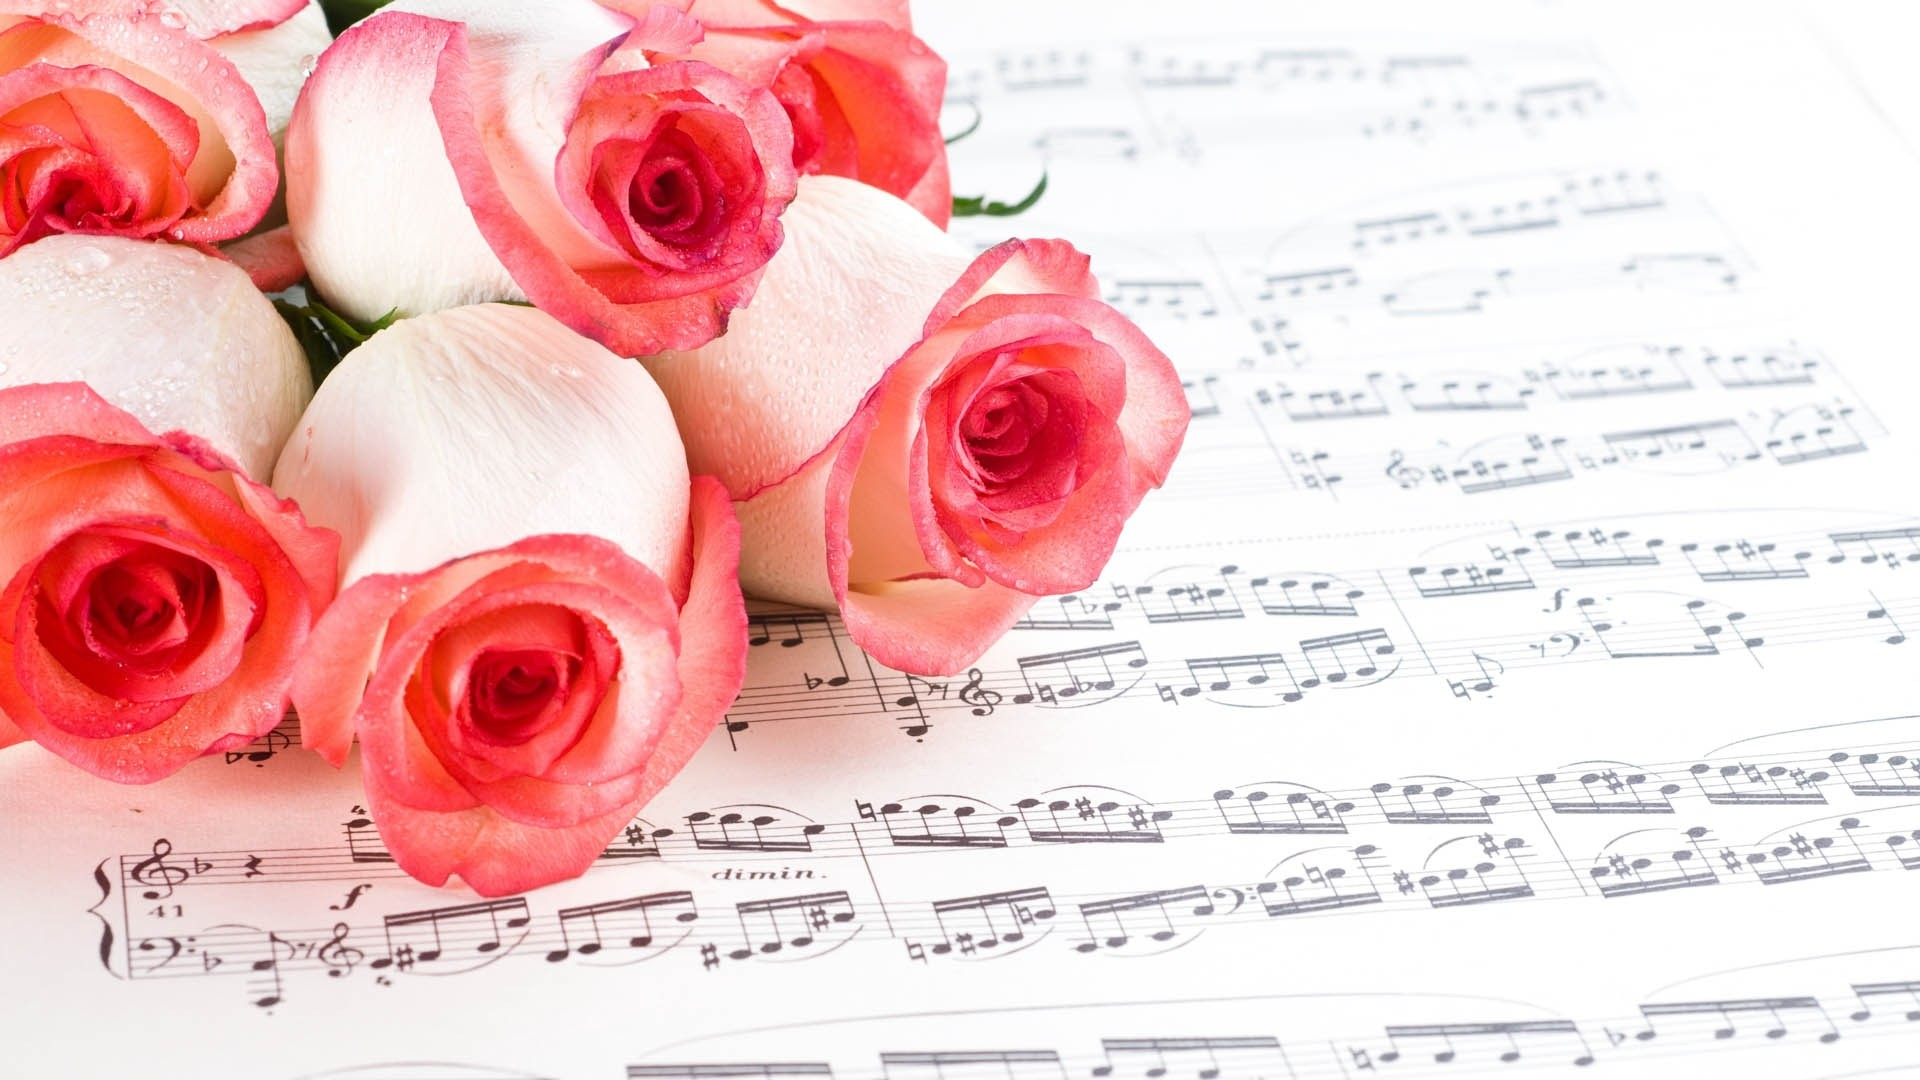 Free Photo Rose And Music Parchment Red Romance Free Download